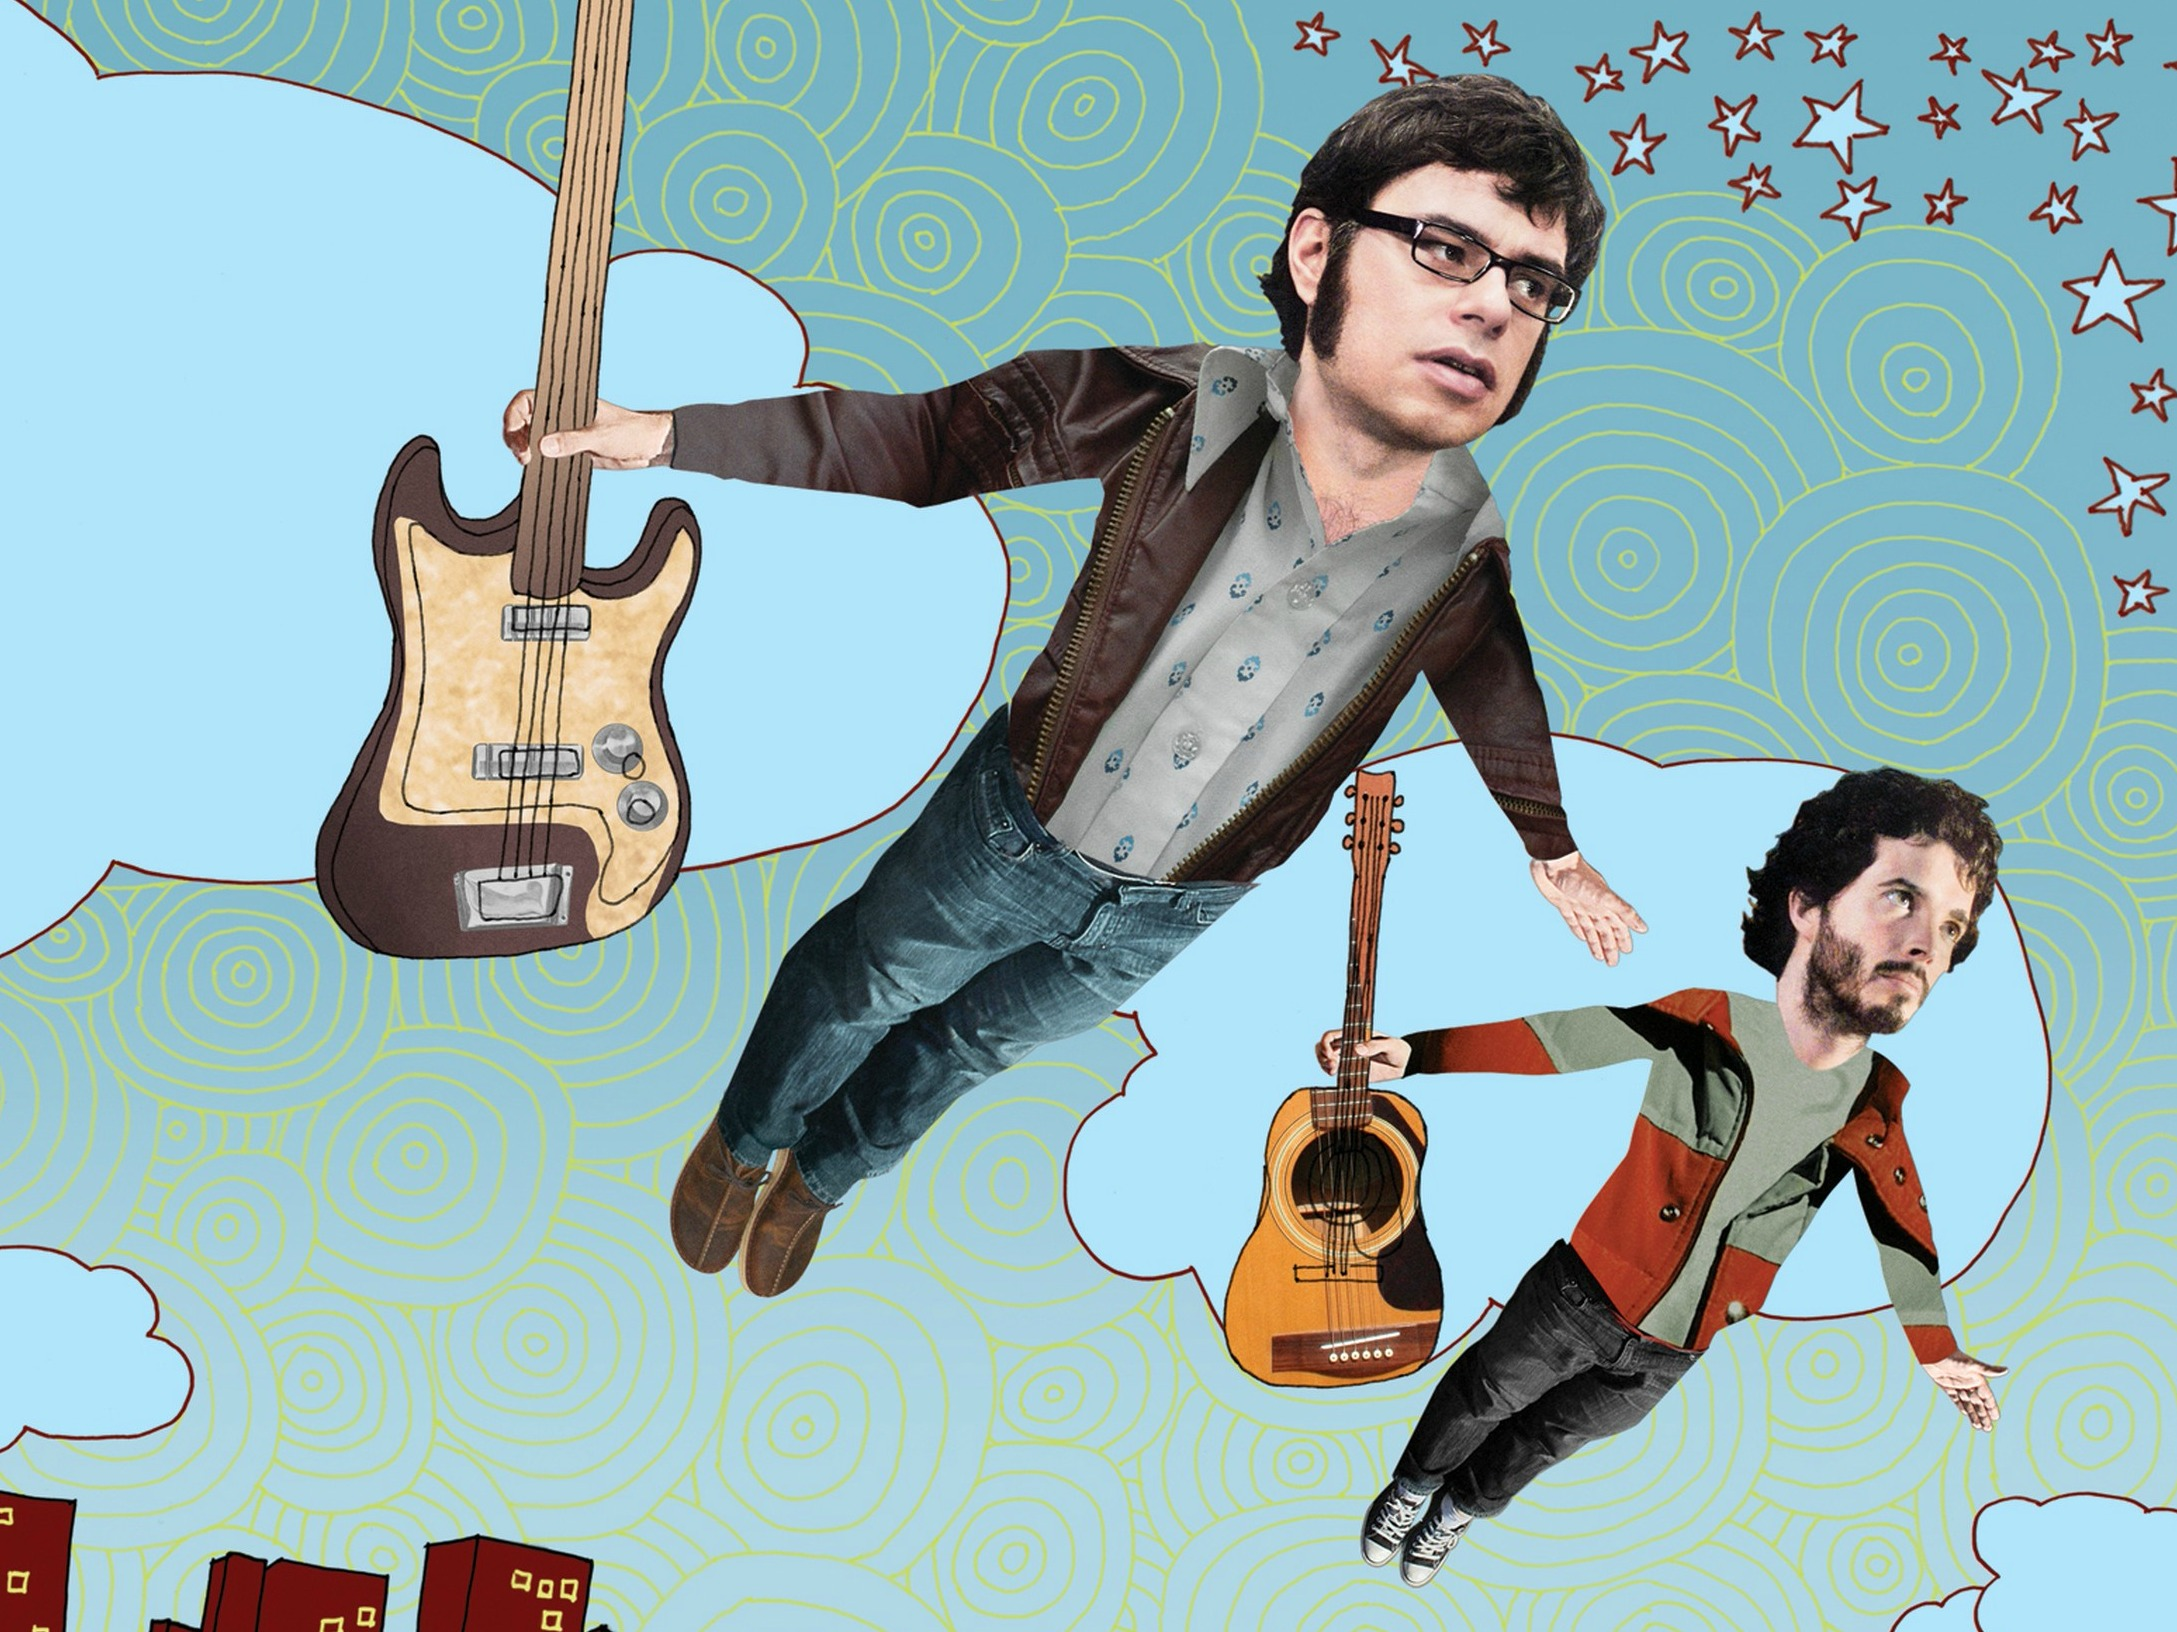 Flight Of The Conchords' Top 5 Funniest, Most Insightful Musical Moments